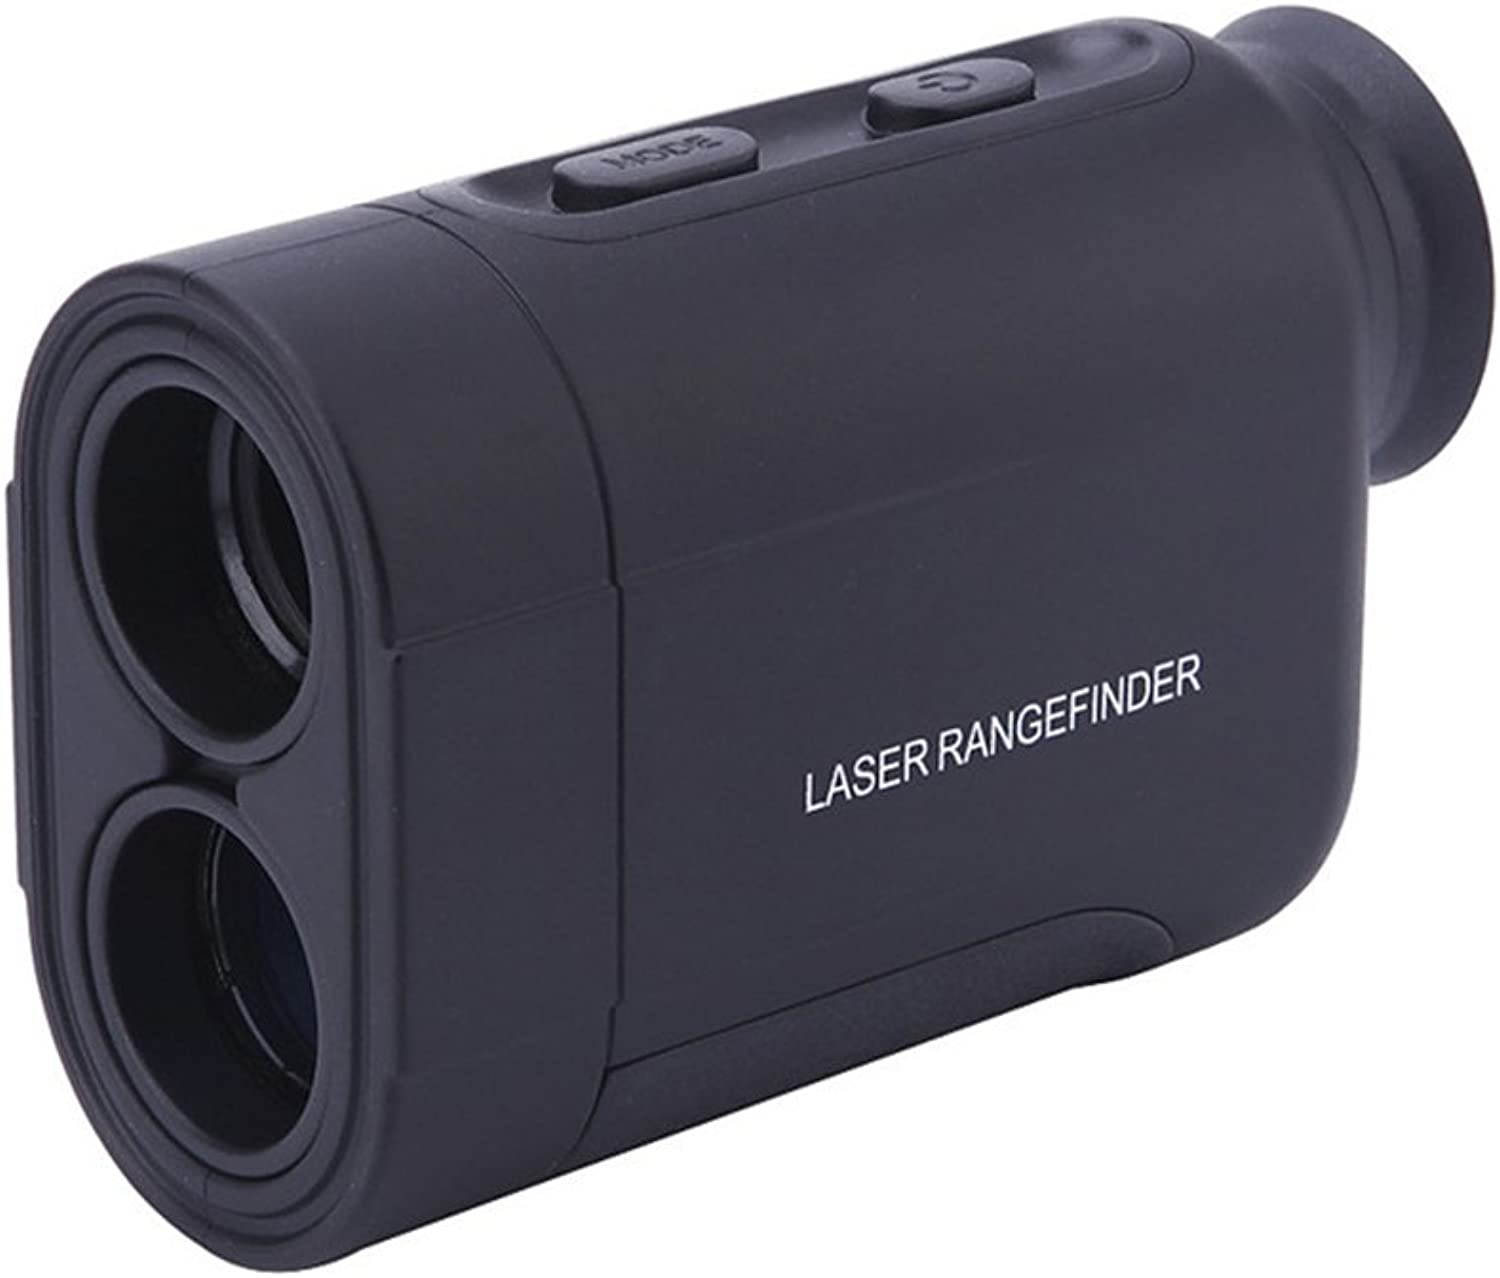 Handheld Infrared Laser Rangefinder Outdoor High Precision Ranging Telescope Measuring Instrument by MAG.AL